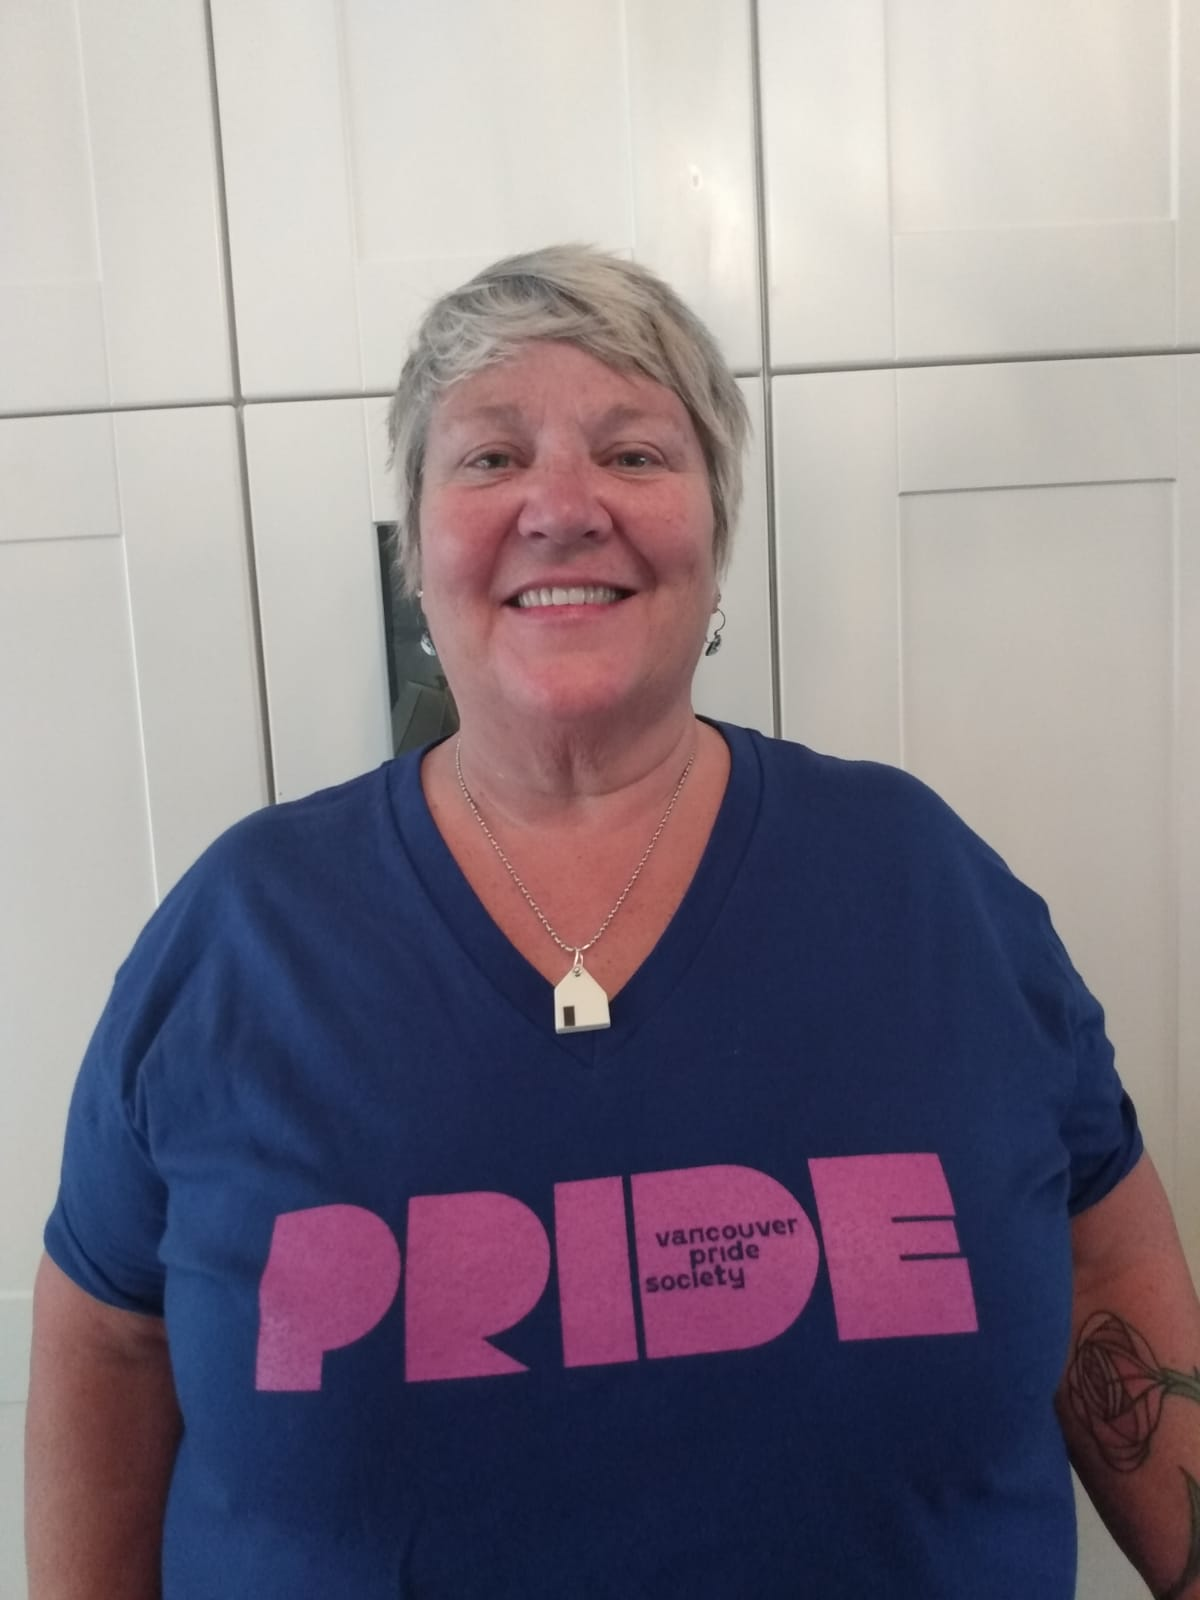 Michelle stands against a white wall and smiles at the camera. She has short grey hair, and is wearing a dark blue t-shirt with a light purple Vancouver Pride logo on it.